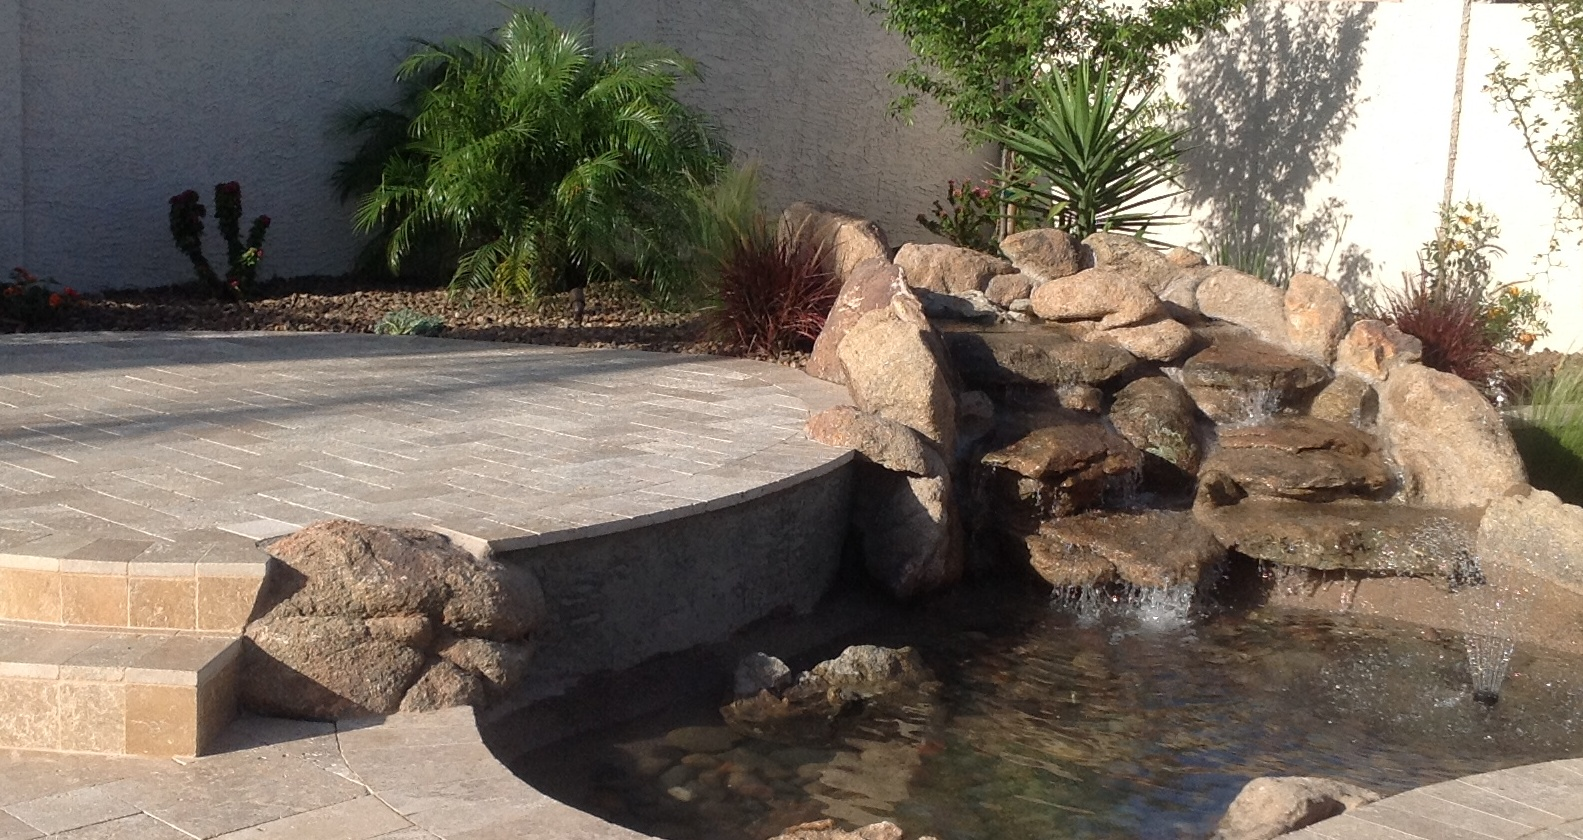 Adding waterscaping like this waterfall pond to your patio add to the backyard experience.